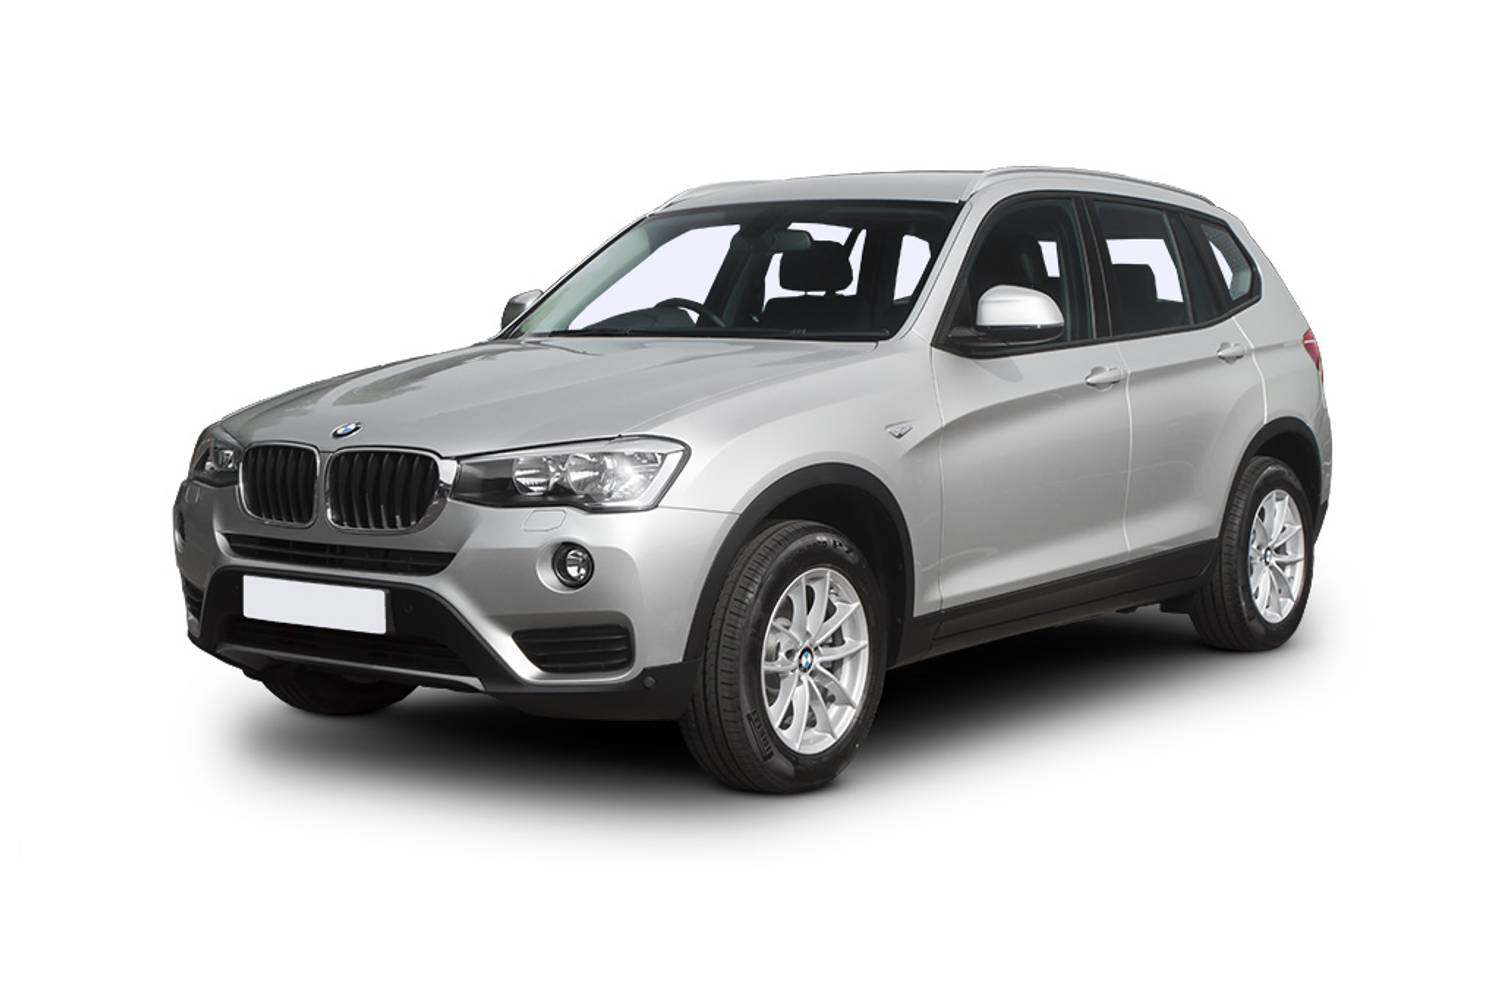 new bmw x3 diesel estate xdrive20d se 5 door step auto 2014 for sale. Black Bedroom Furniture Sets. Home Design Ideas